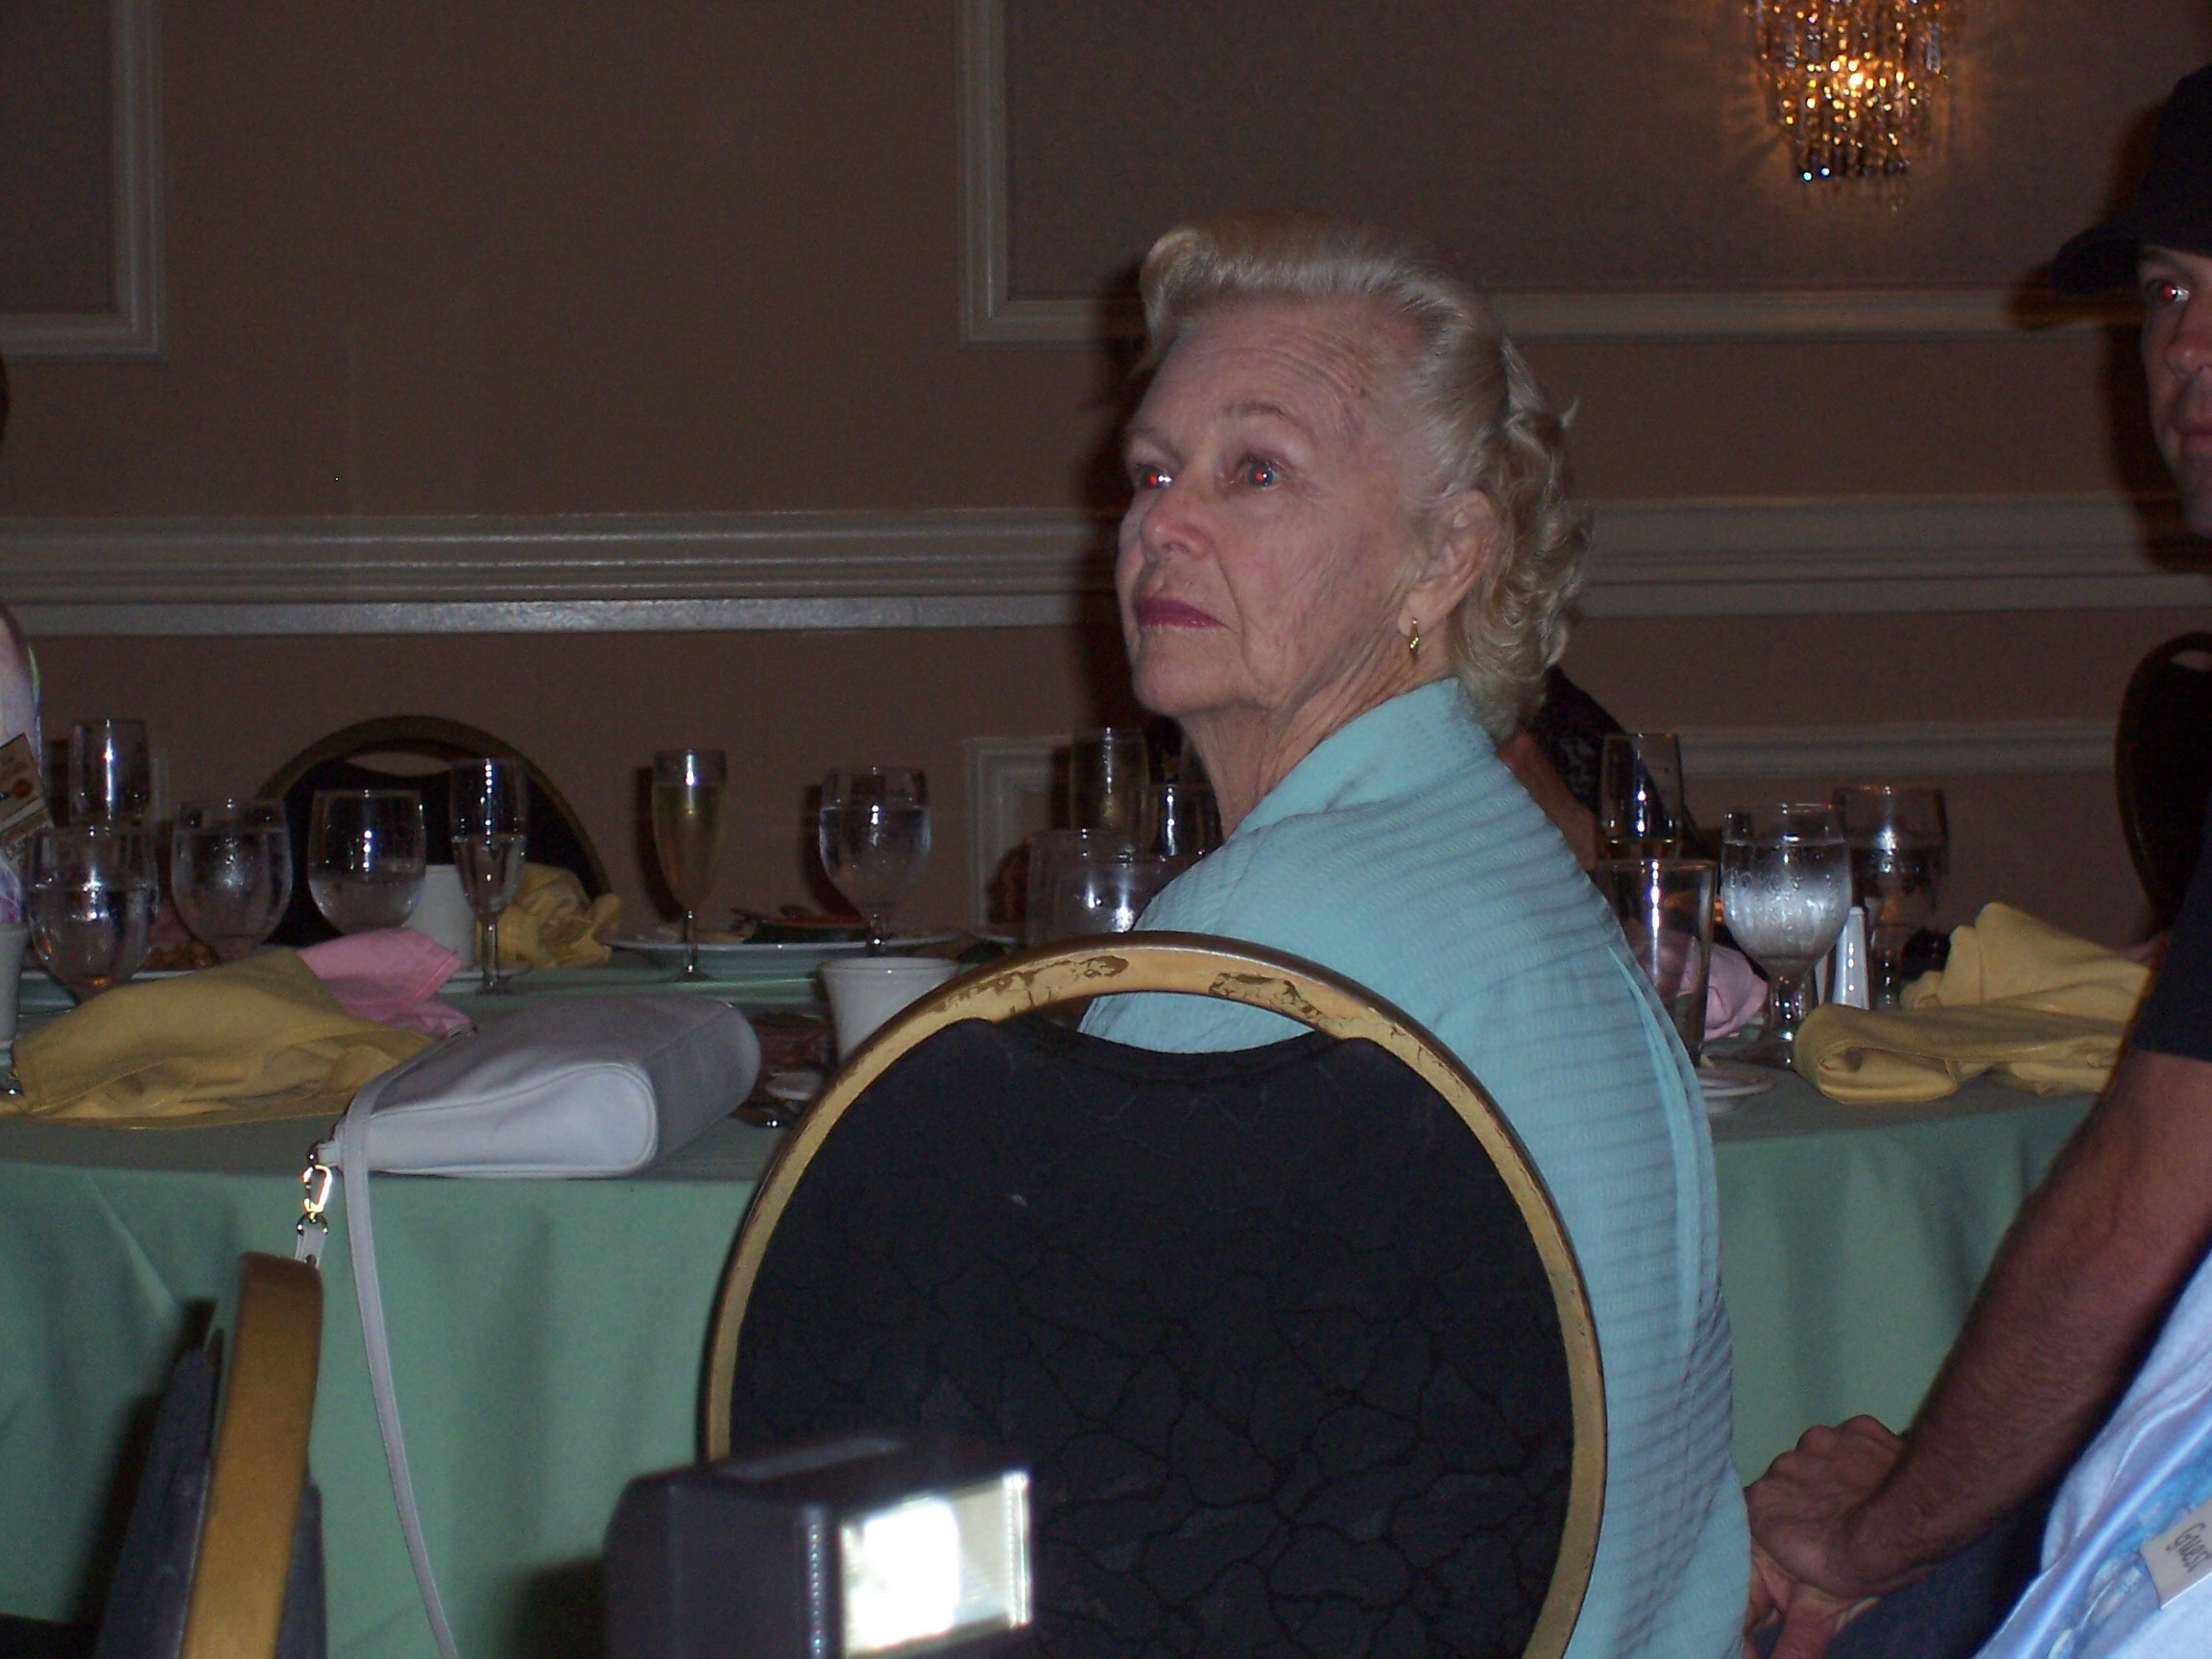 Ann Erickson (wife of Leif Erickson) attended with her grandson, BJ